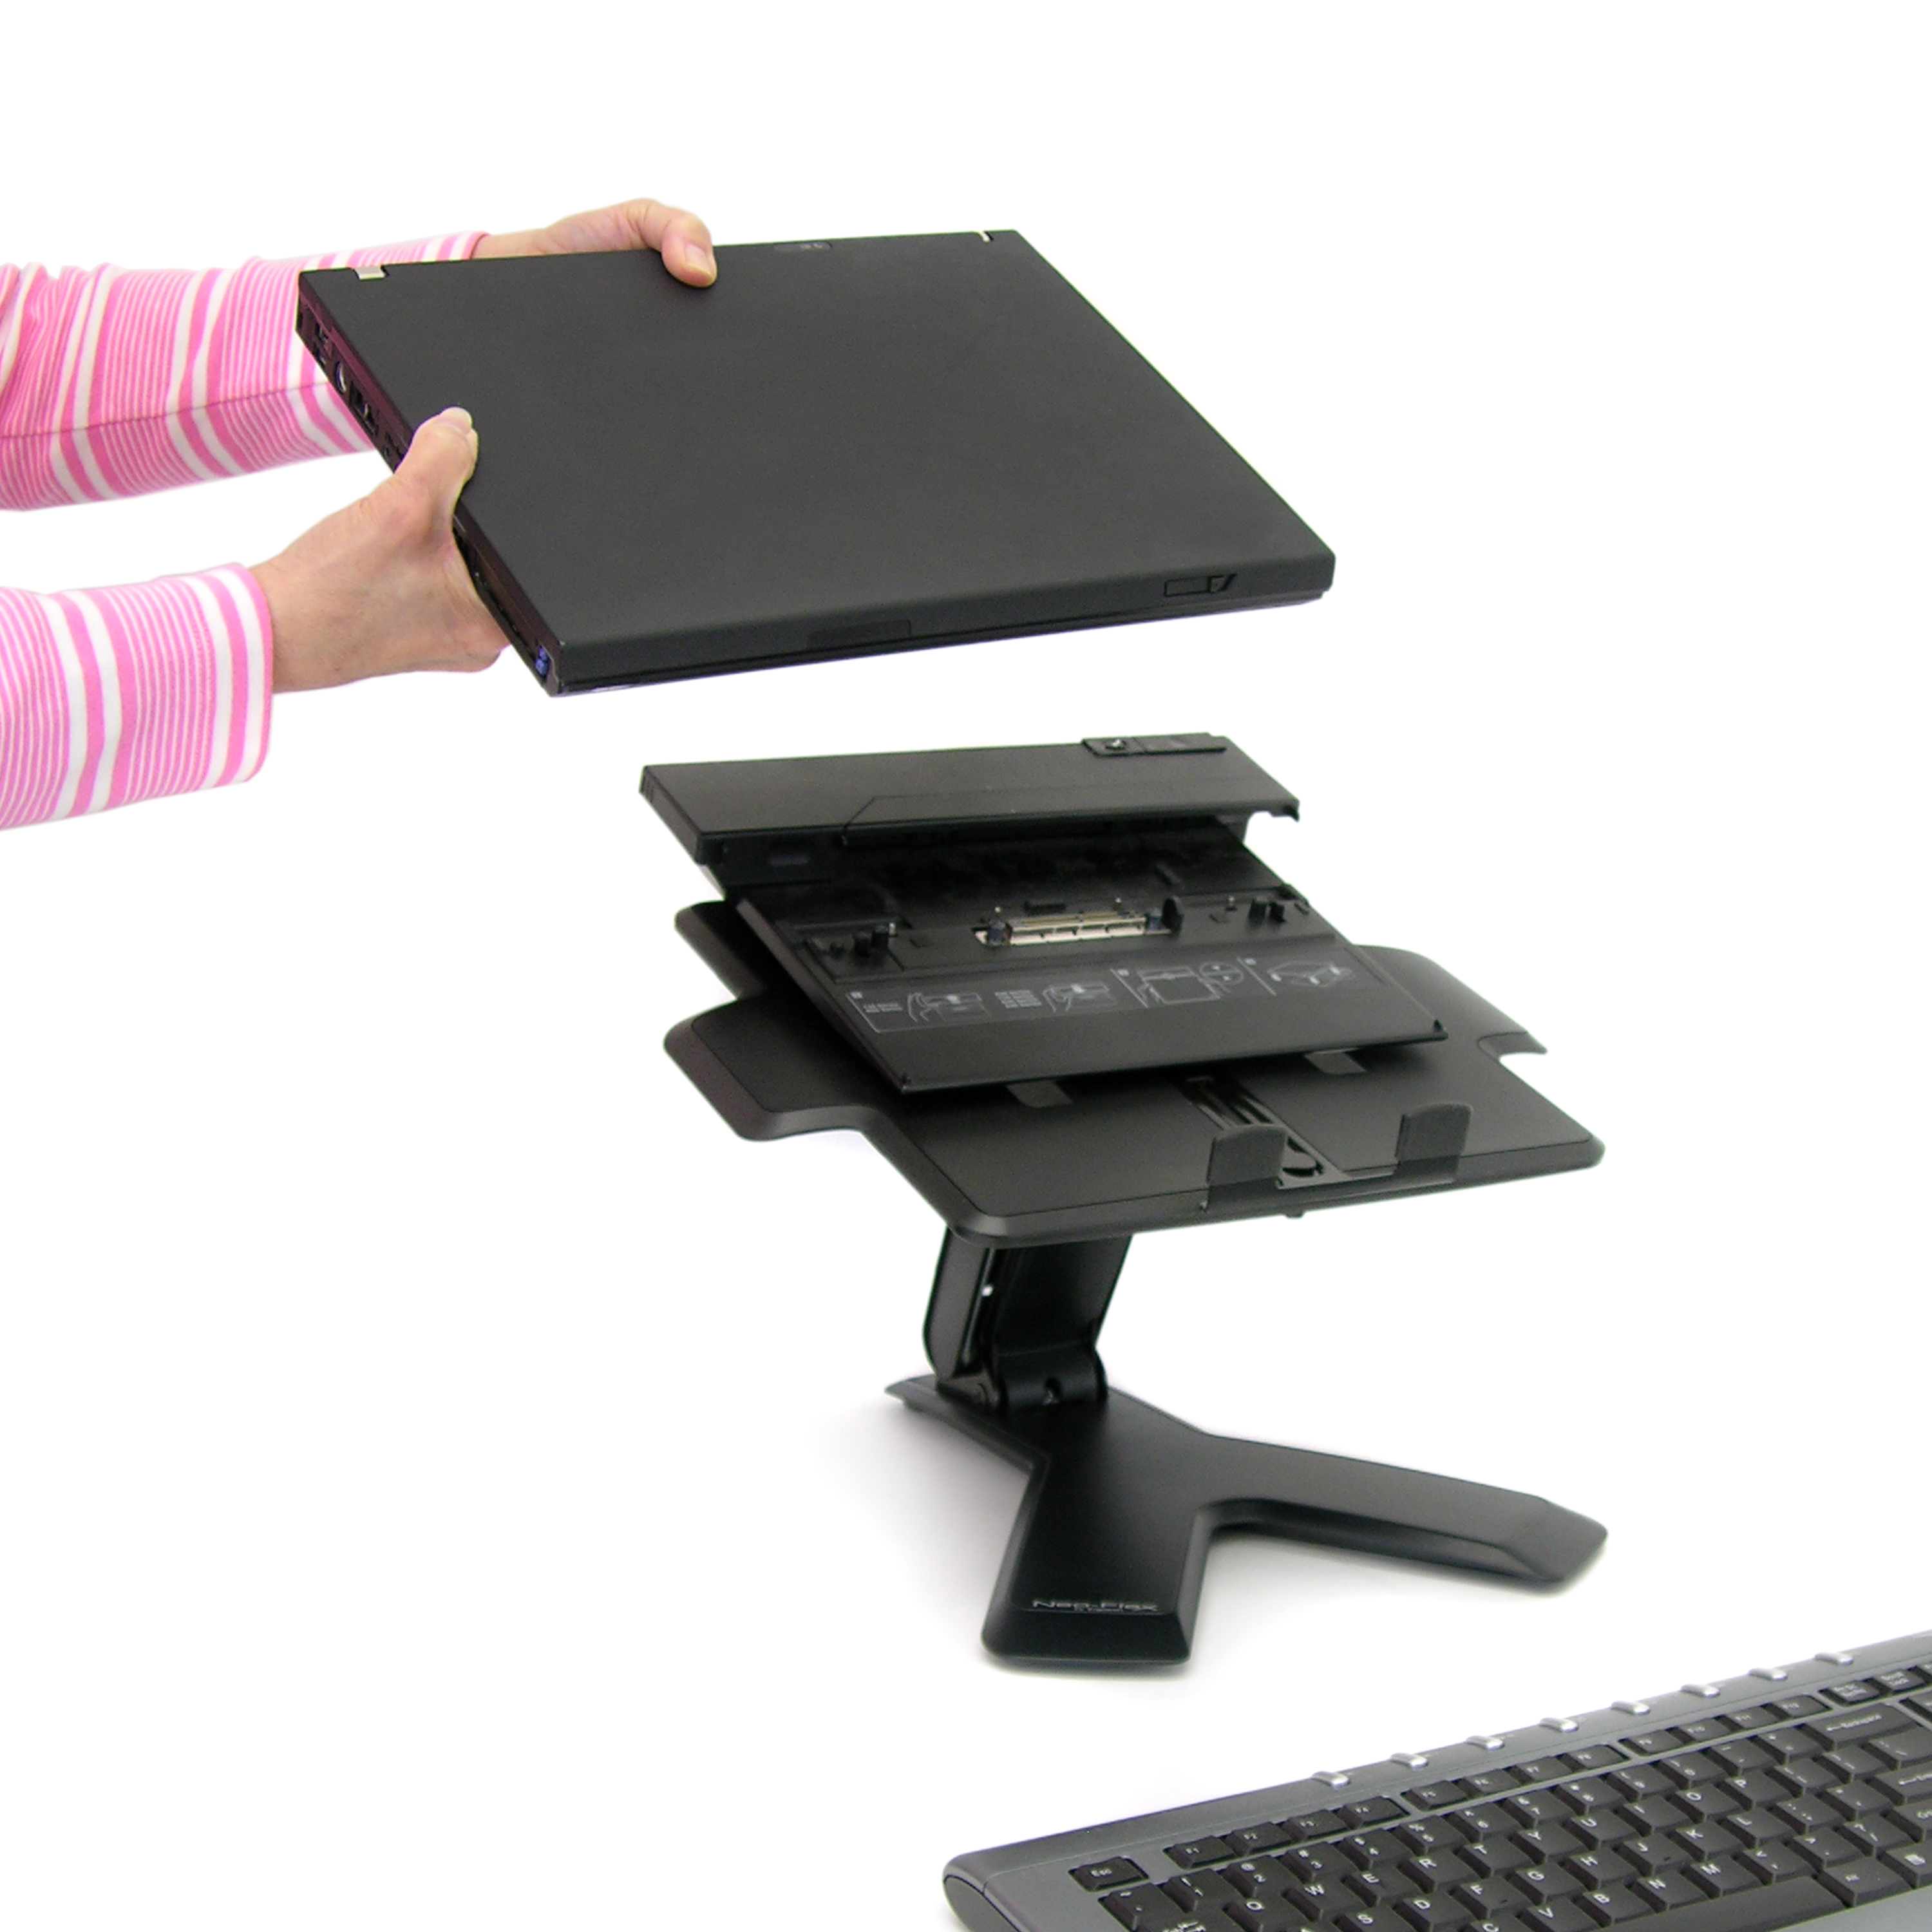 lap right tray retractable slip mouse notebook portable itm non sturdy desk tablet pad stable stand laptop w table computer shield abovetek heat left